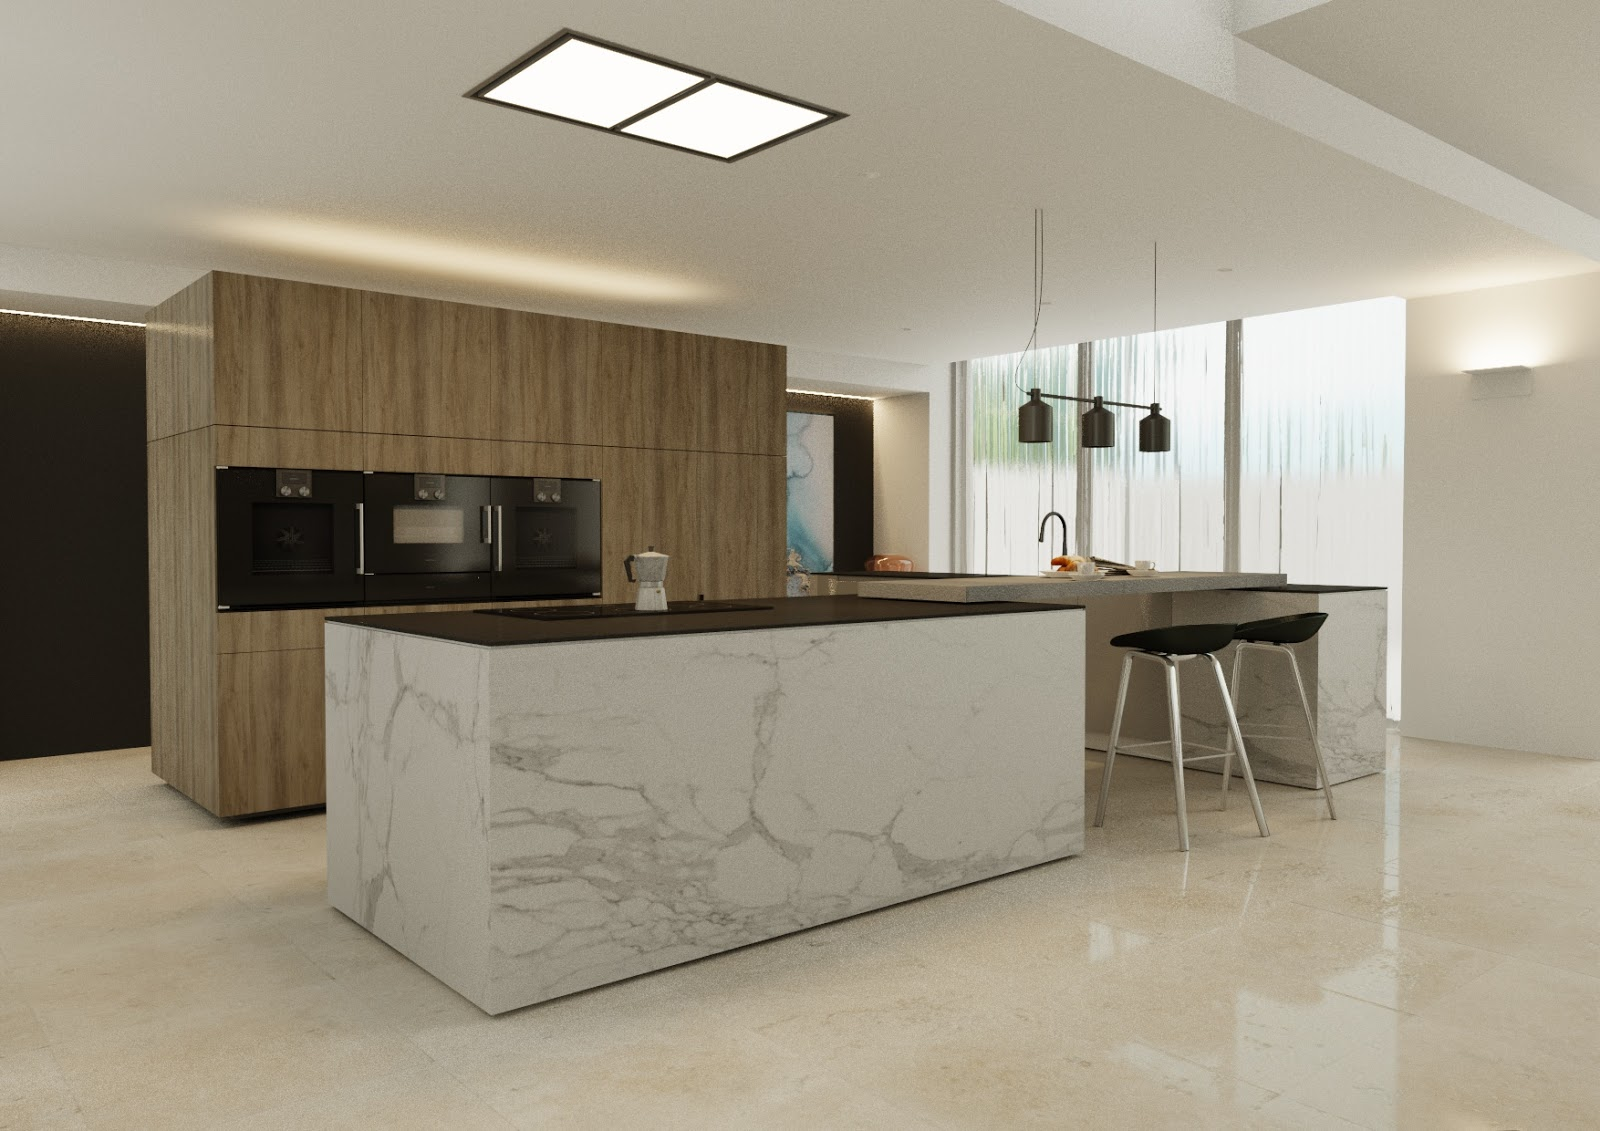 Minosa modern kitchen design requires contemporary approach - Modern kitchen design photos ...